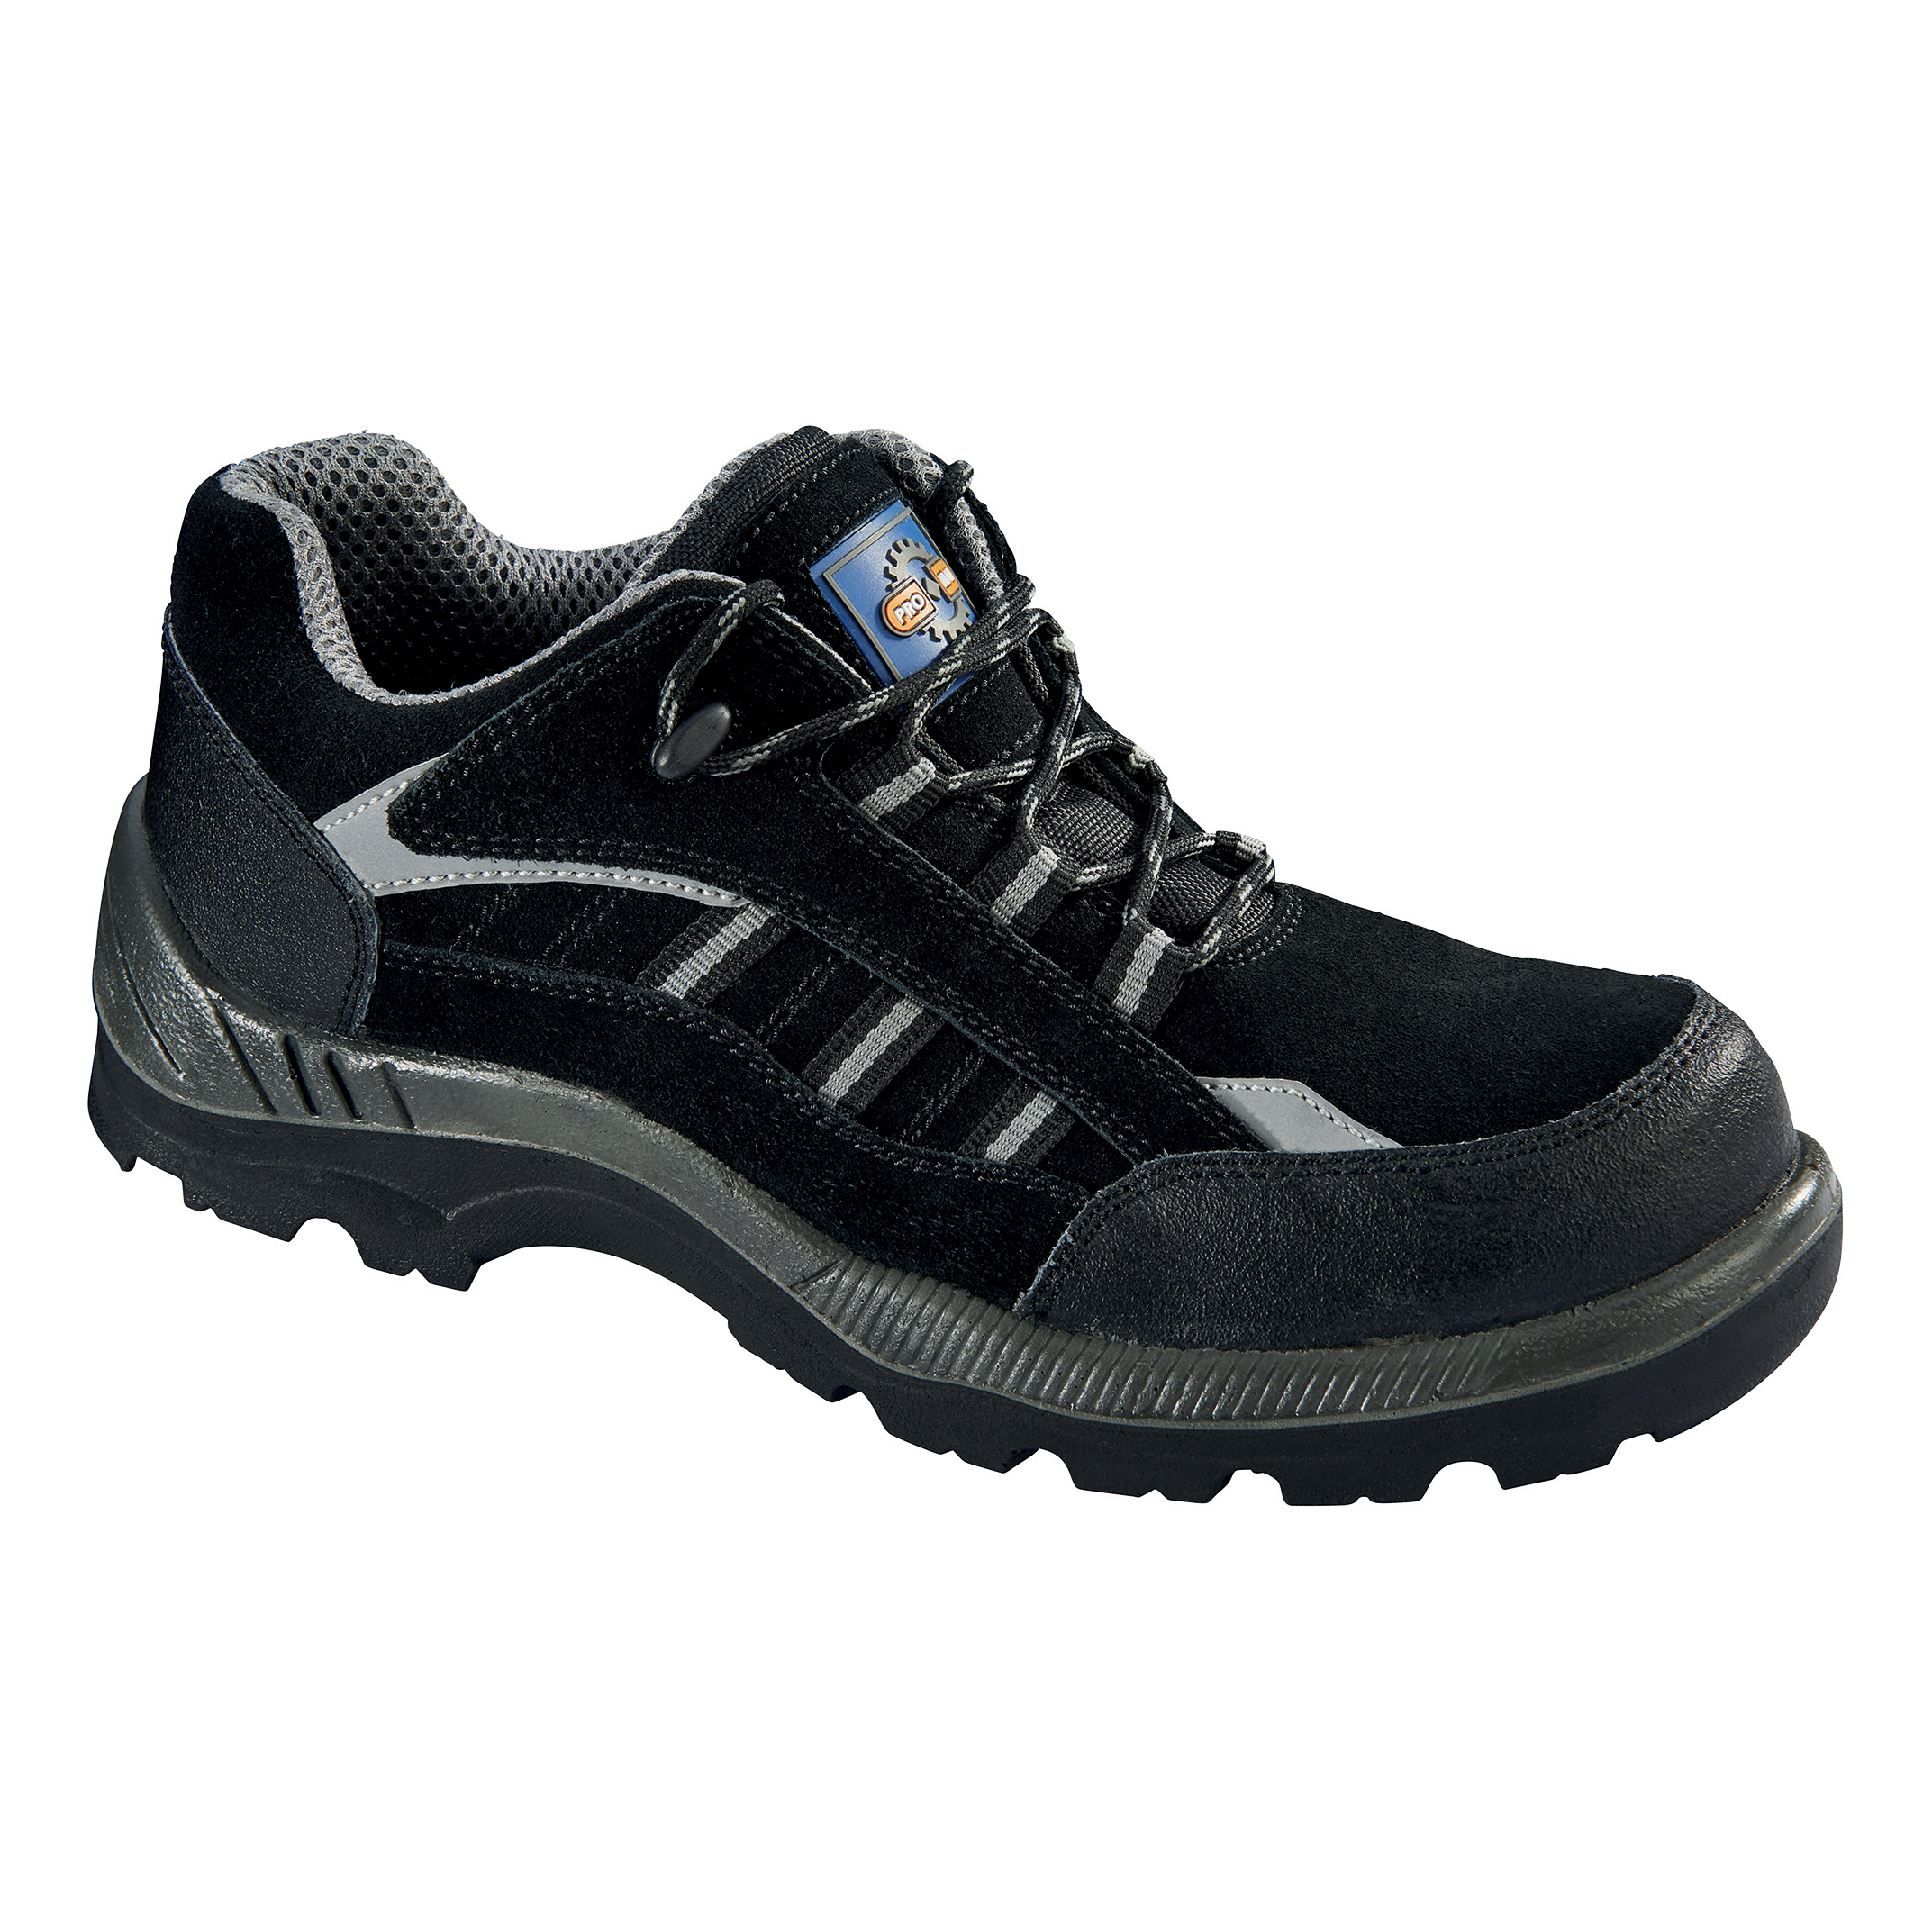 Safety shoes Rockfall ProMan Trainer Suede Fibreglass Toecap Black Size 9 Ref PM4040 9